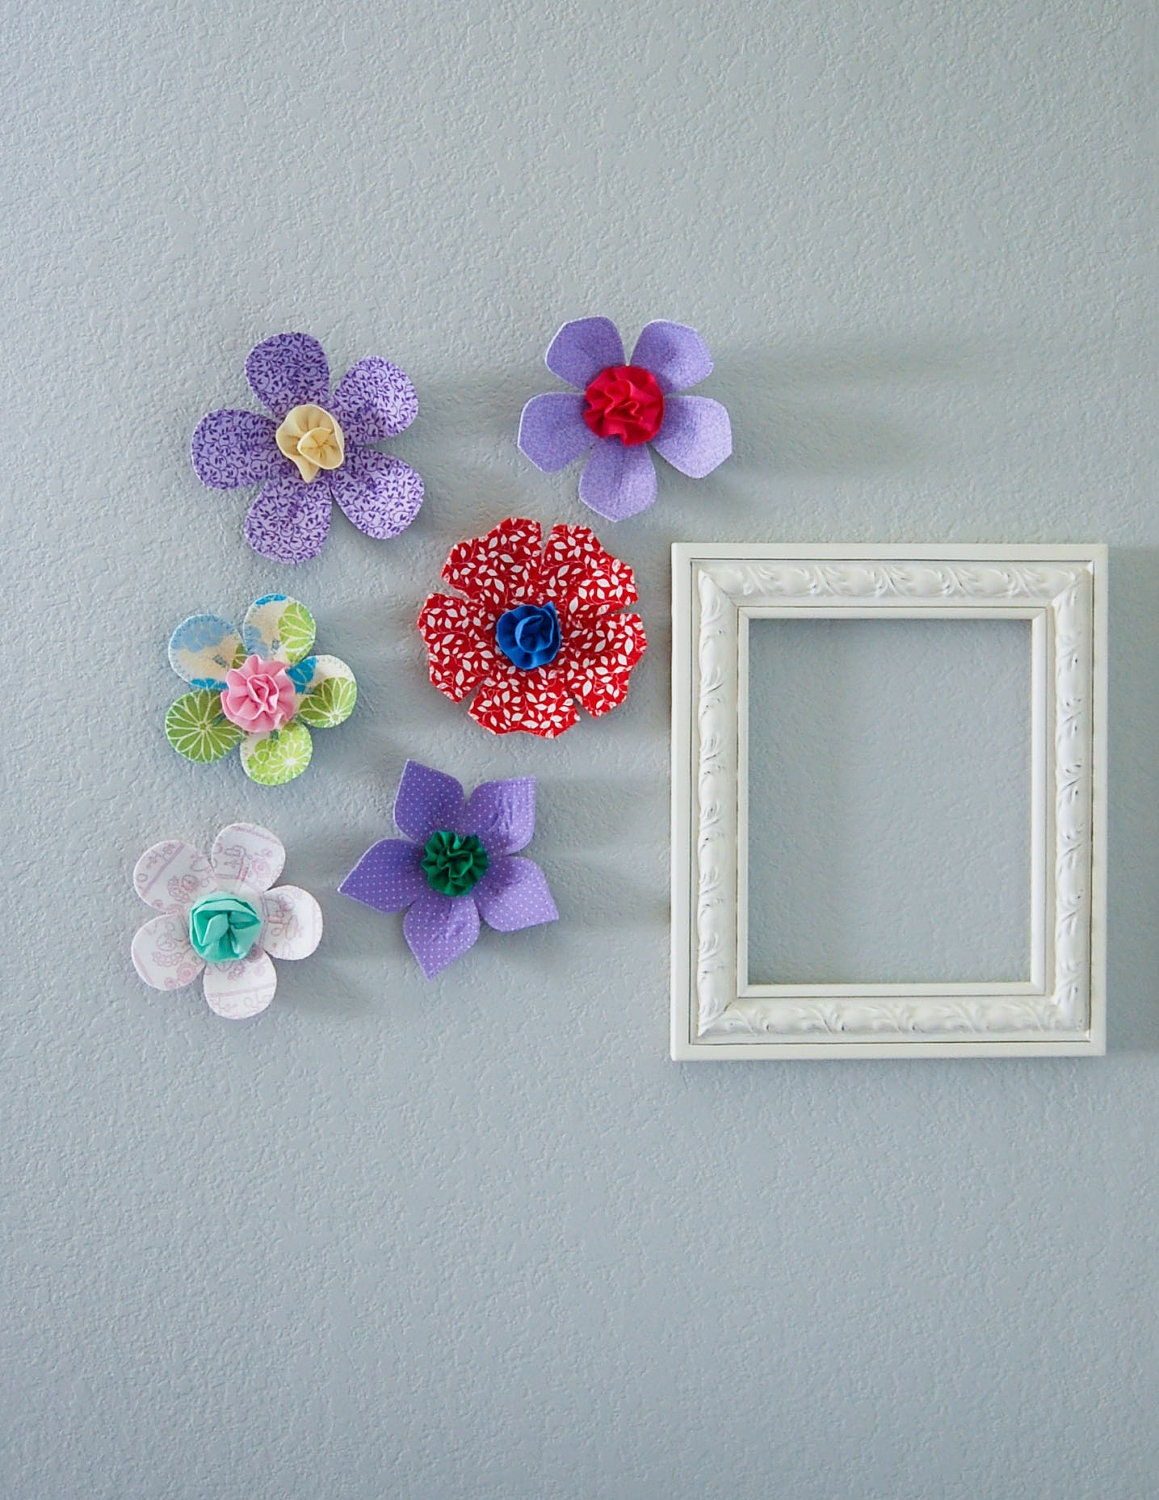 Fabric wall flower 3d wall art wall decor fabric flower for Fabric wall art